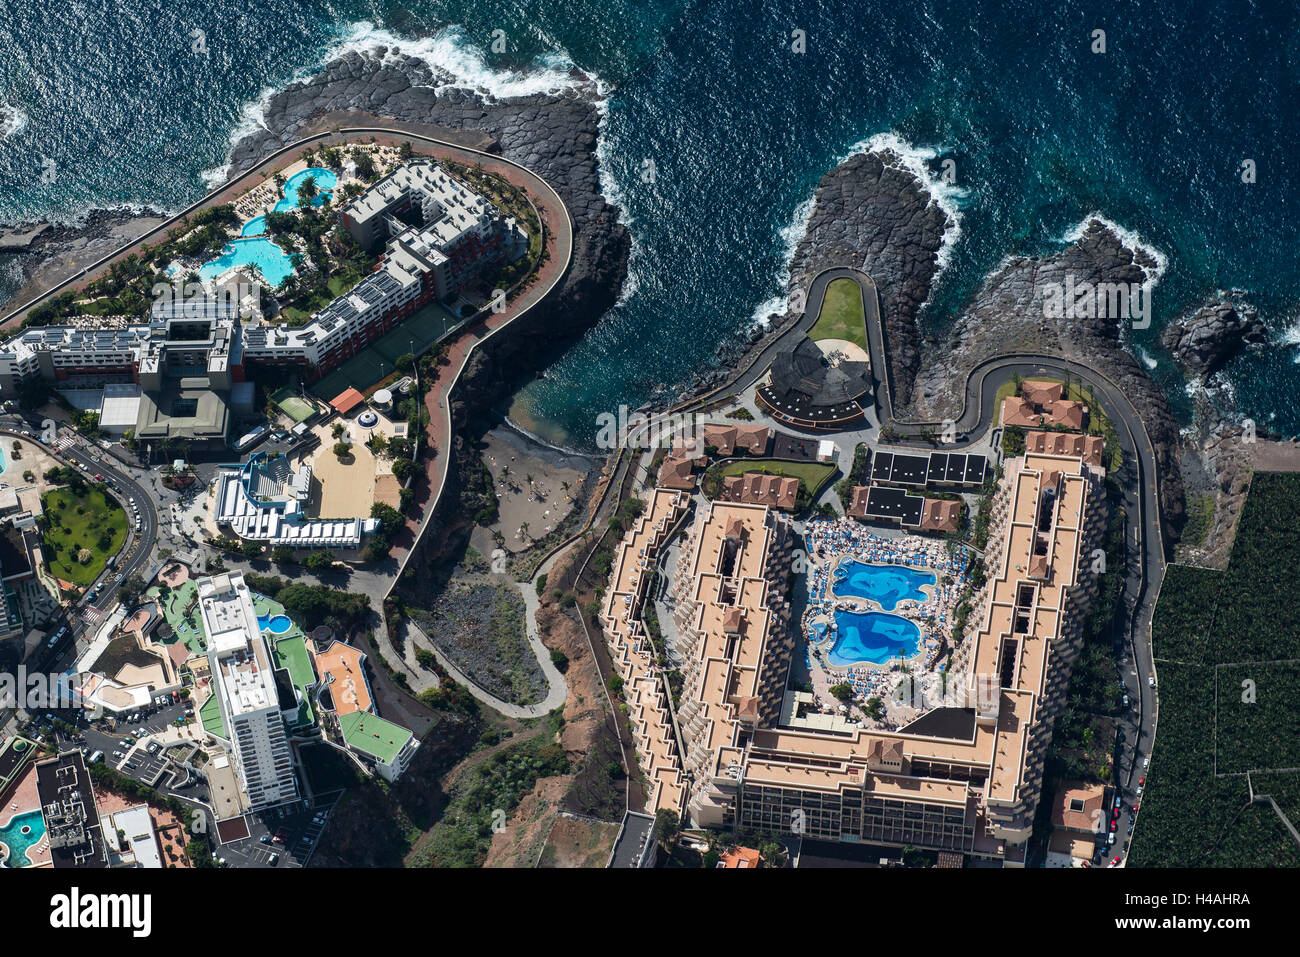 Tenerife, Playa Paraiso, El Roque, Punta Negra, aerial picture, beach, the Atlantic, sea, promenade, hotels, hotel - Stock Image